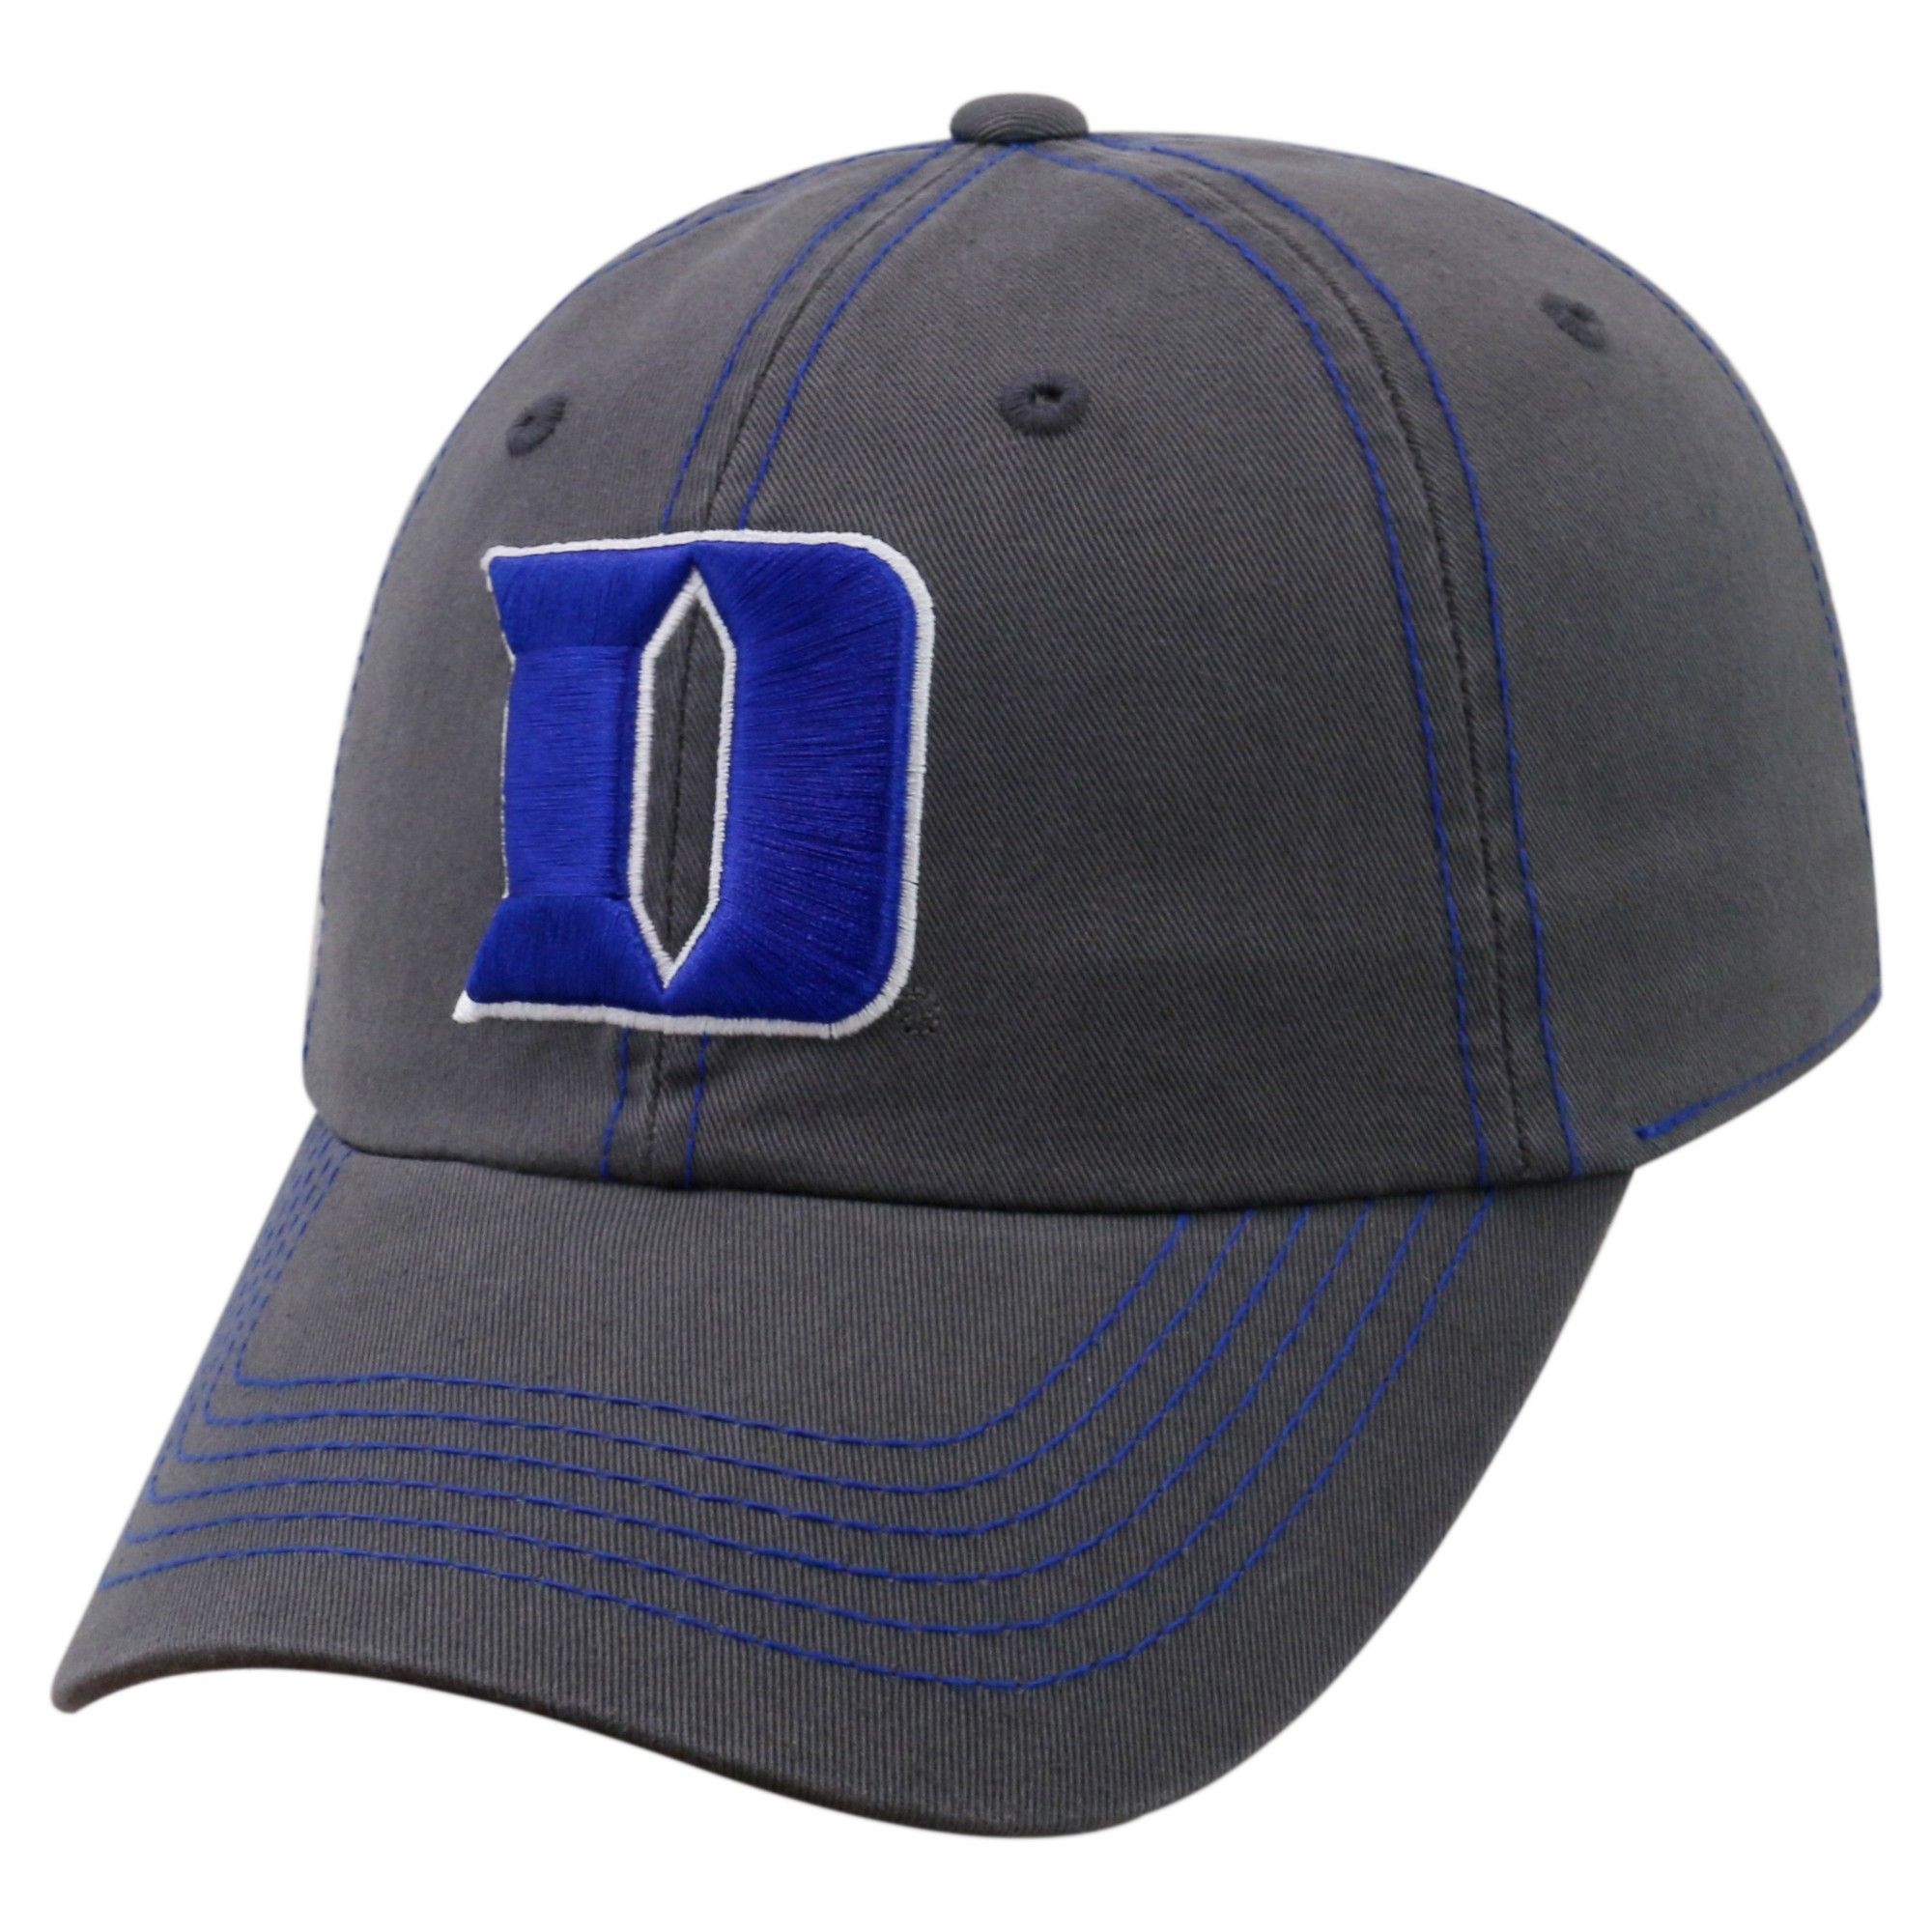 Baseball Hats NCAA Duke Blue Devils Rich Charcoal c6e56cf69b4f